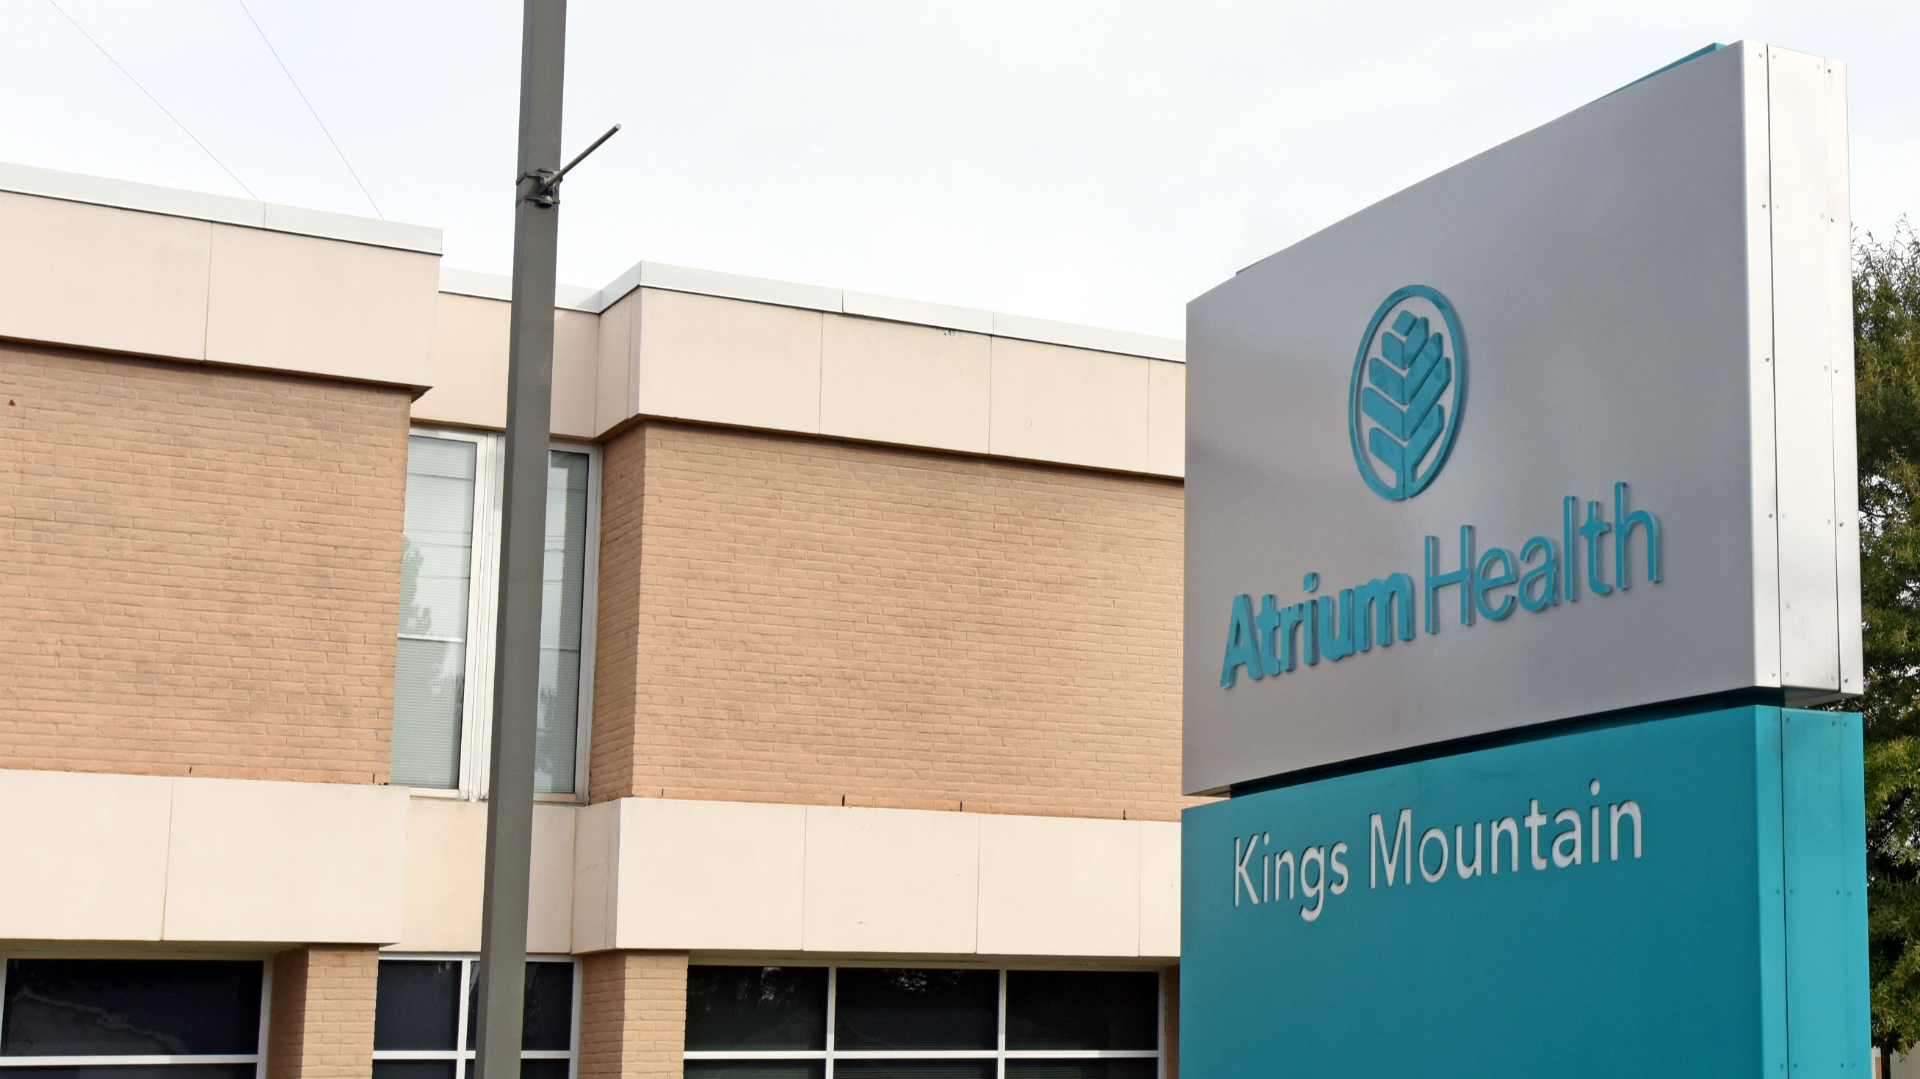 Atrium Health Kings Mountain became the hospital's official name on Nov. 1, 2018.